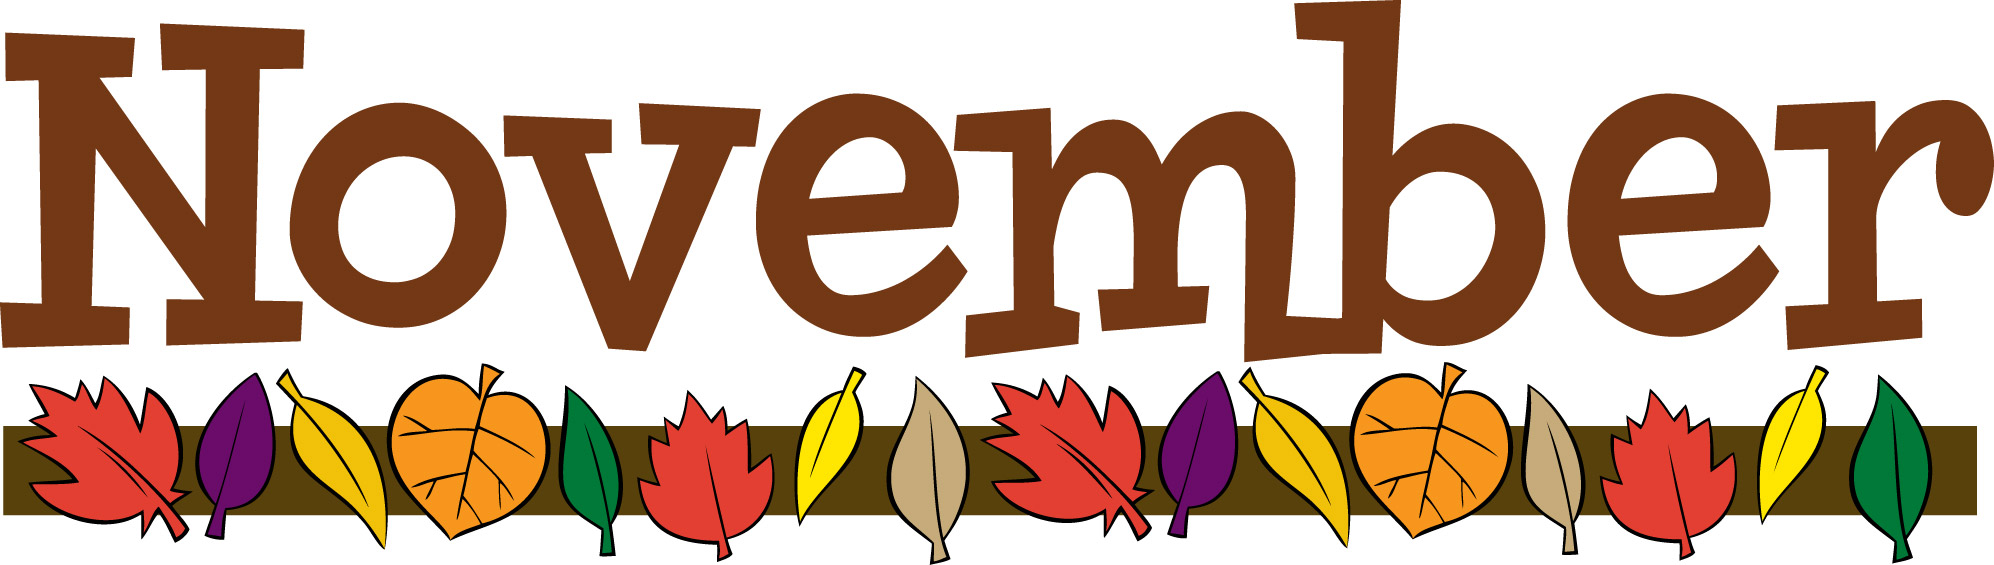 November clip art clipart photo